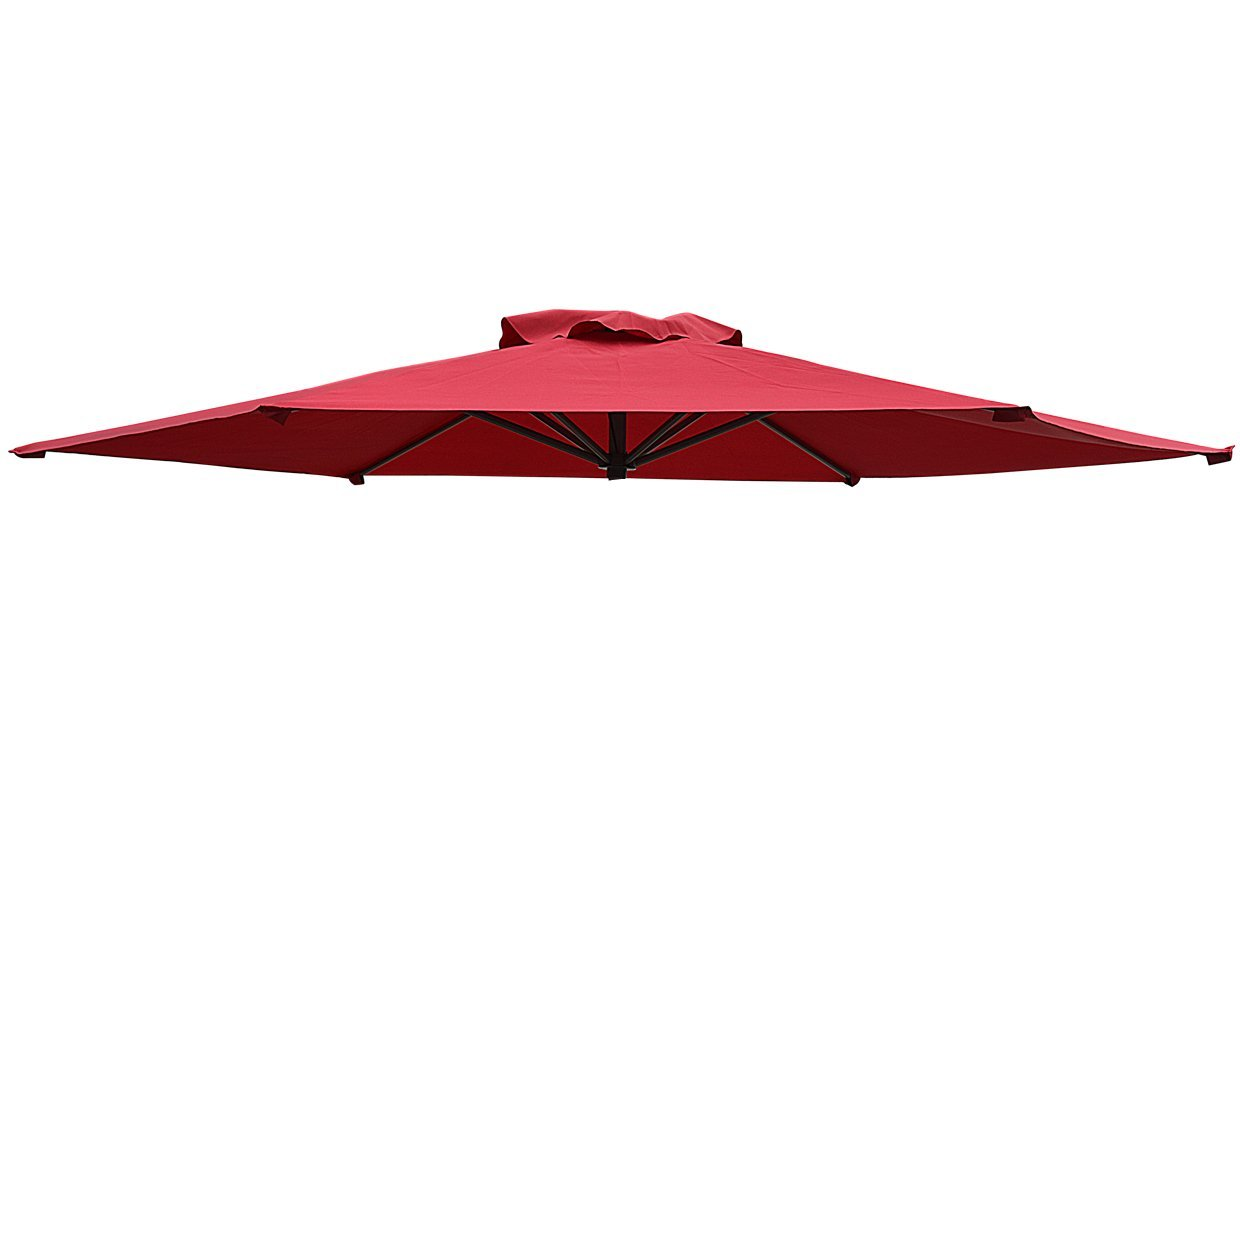 Strong Camel Replacement Patio Umbrella Canopy Cover For 8.2ft 6 Ribs  Umbrella Taupe (CANOPY